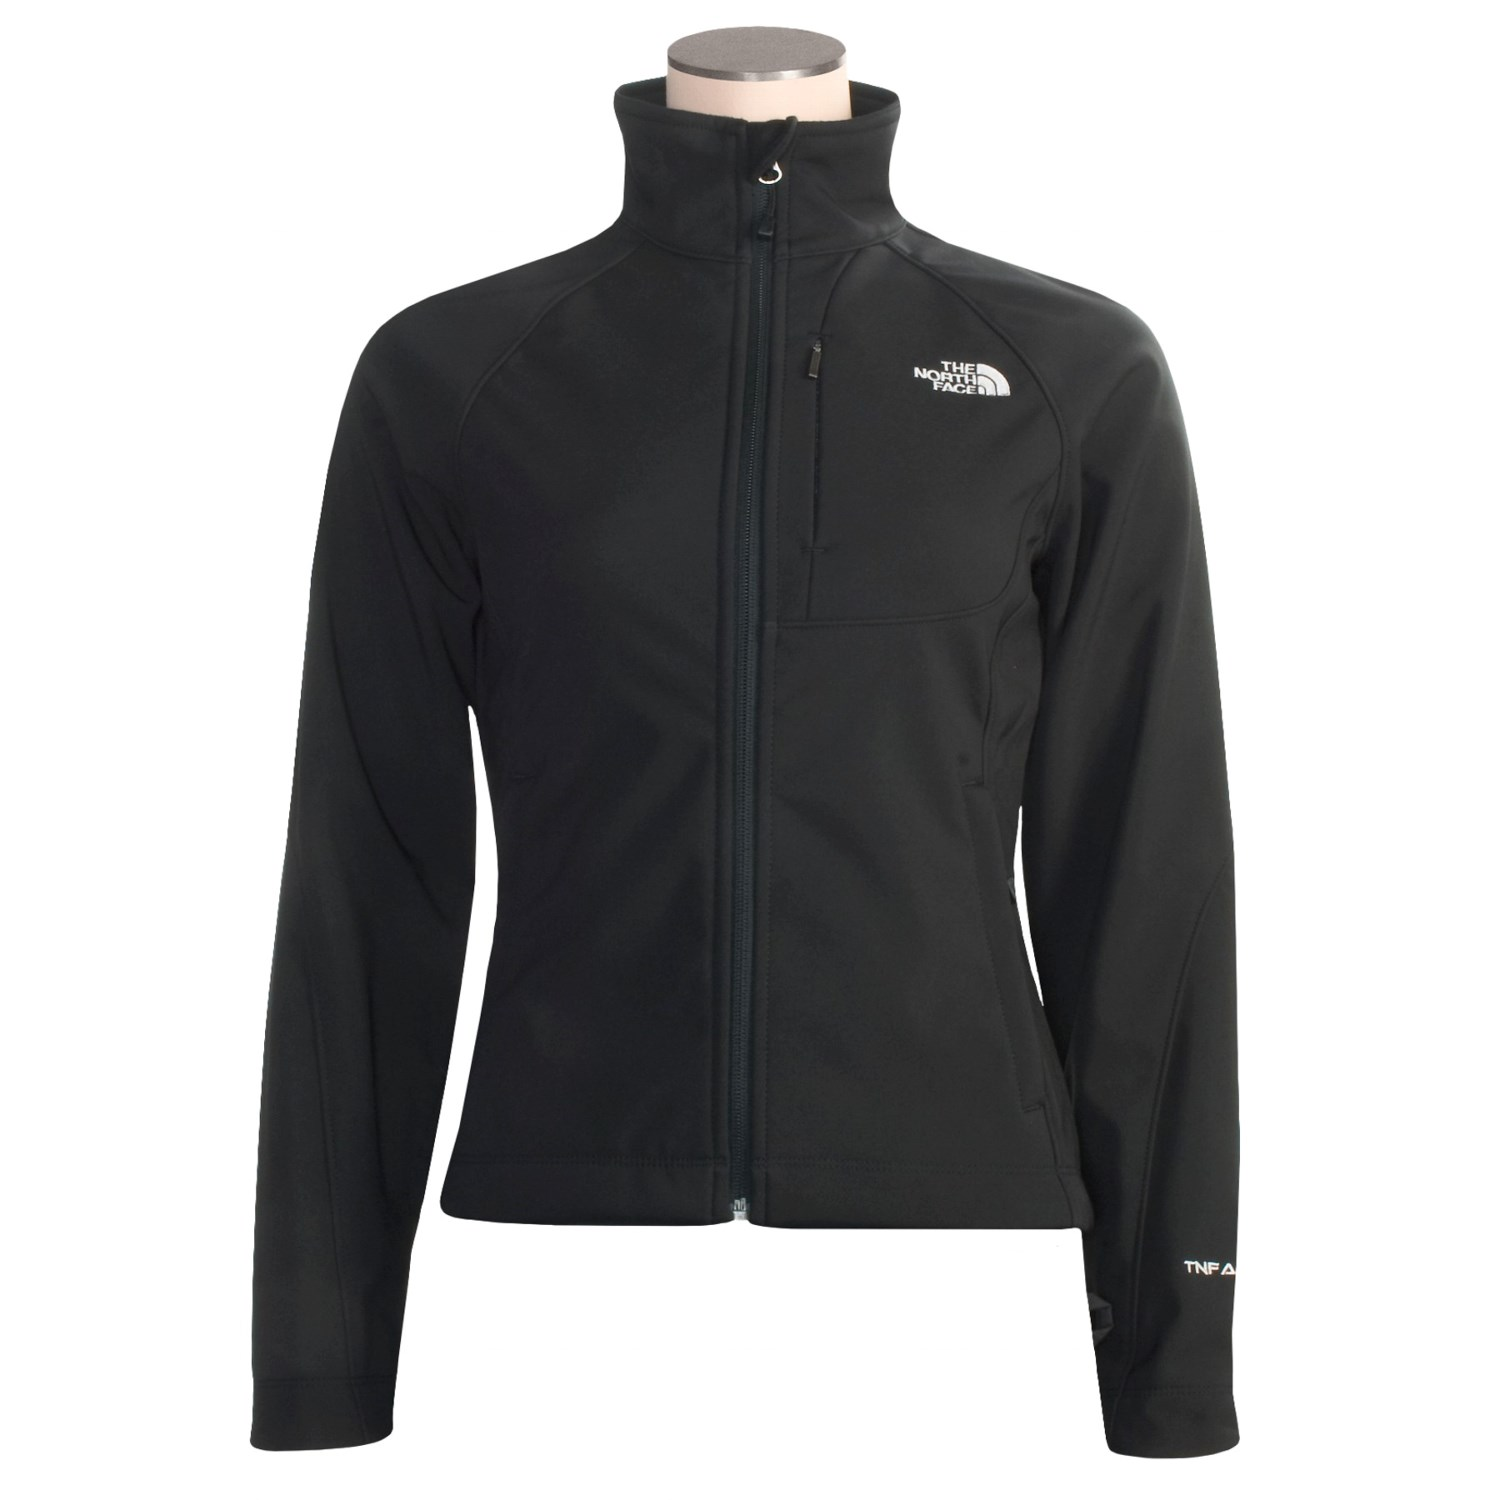 the north face apex bionic soft shell jacket for women 3995w. Black Bedroom Furniture Sets. Home Design Ideas